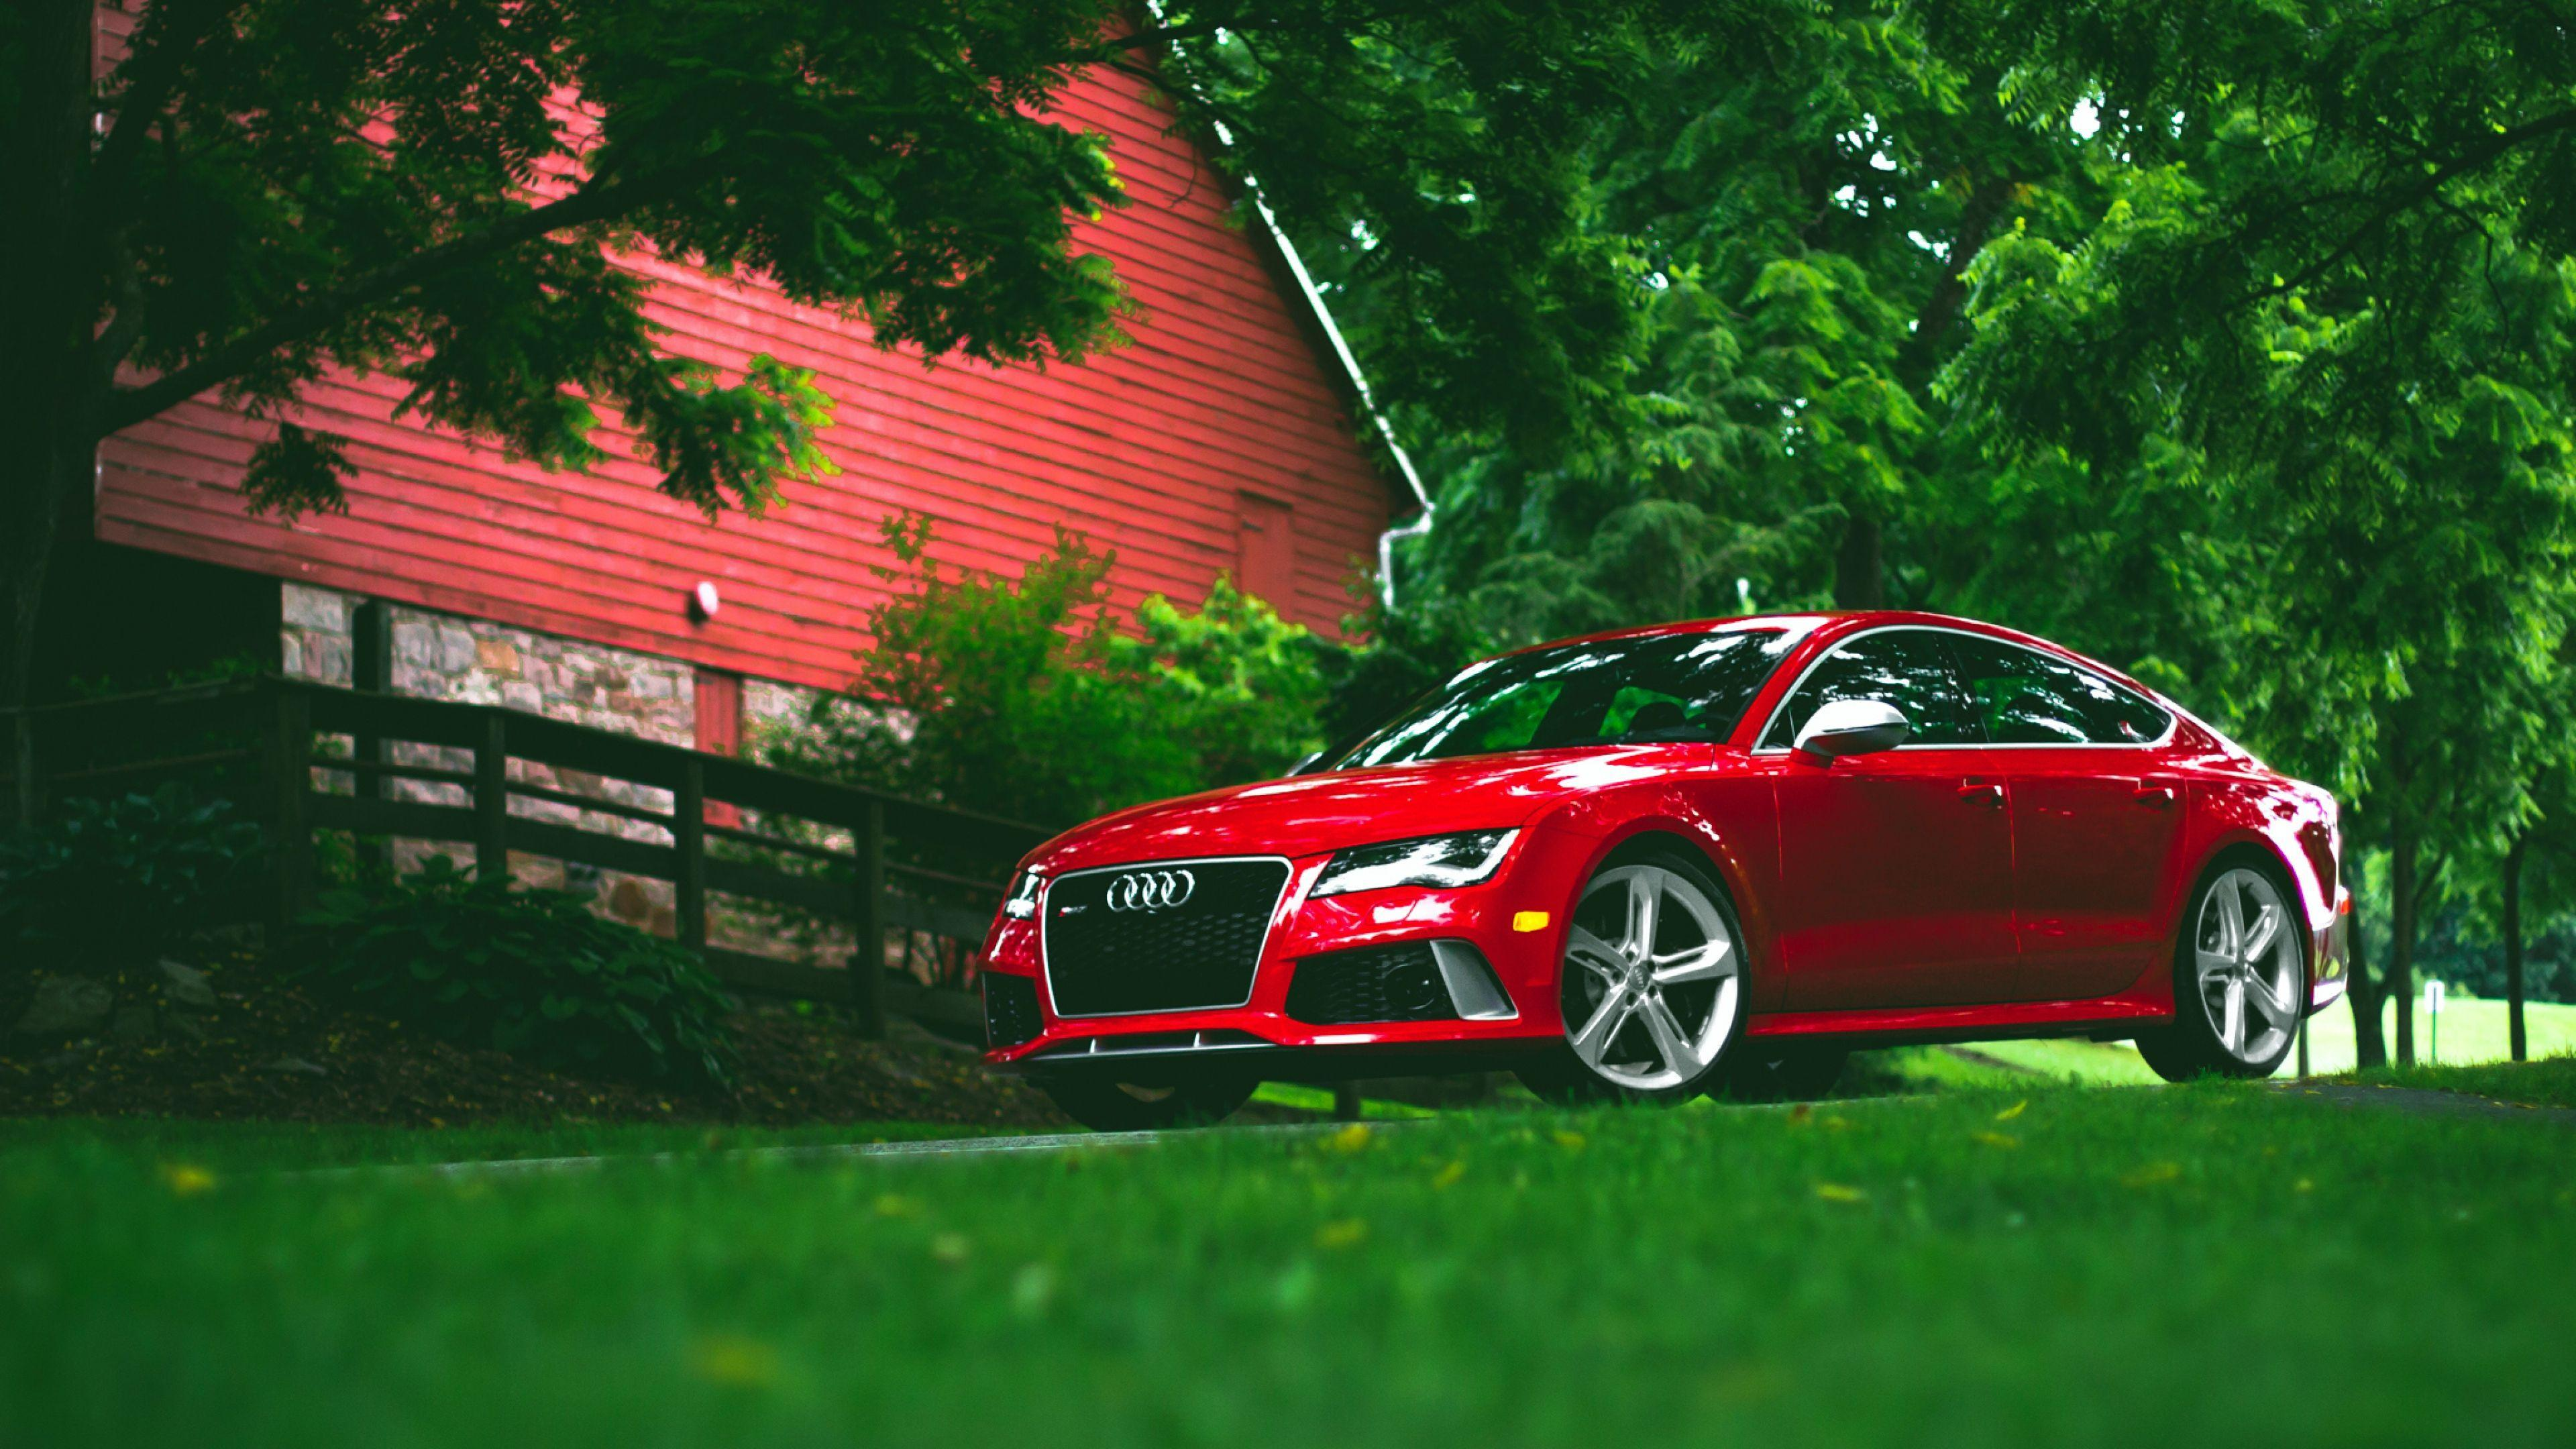 Download Wallpapers 3840x2160 Audi, Rs7, Red, Grass, Side view 4K